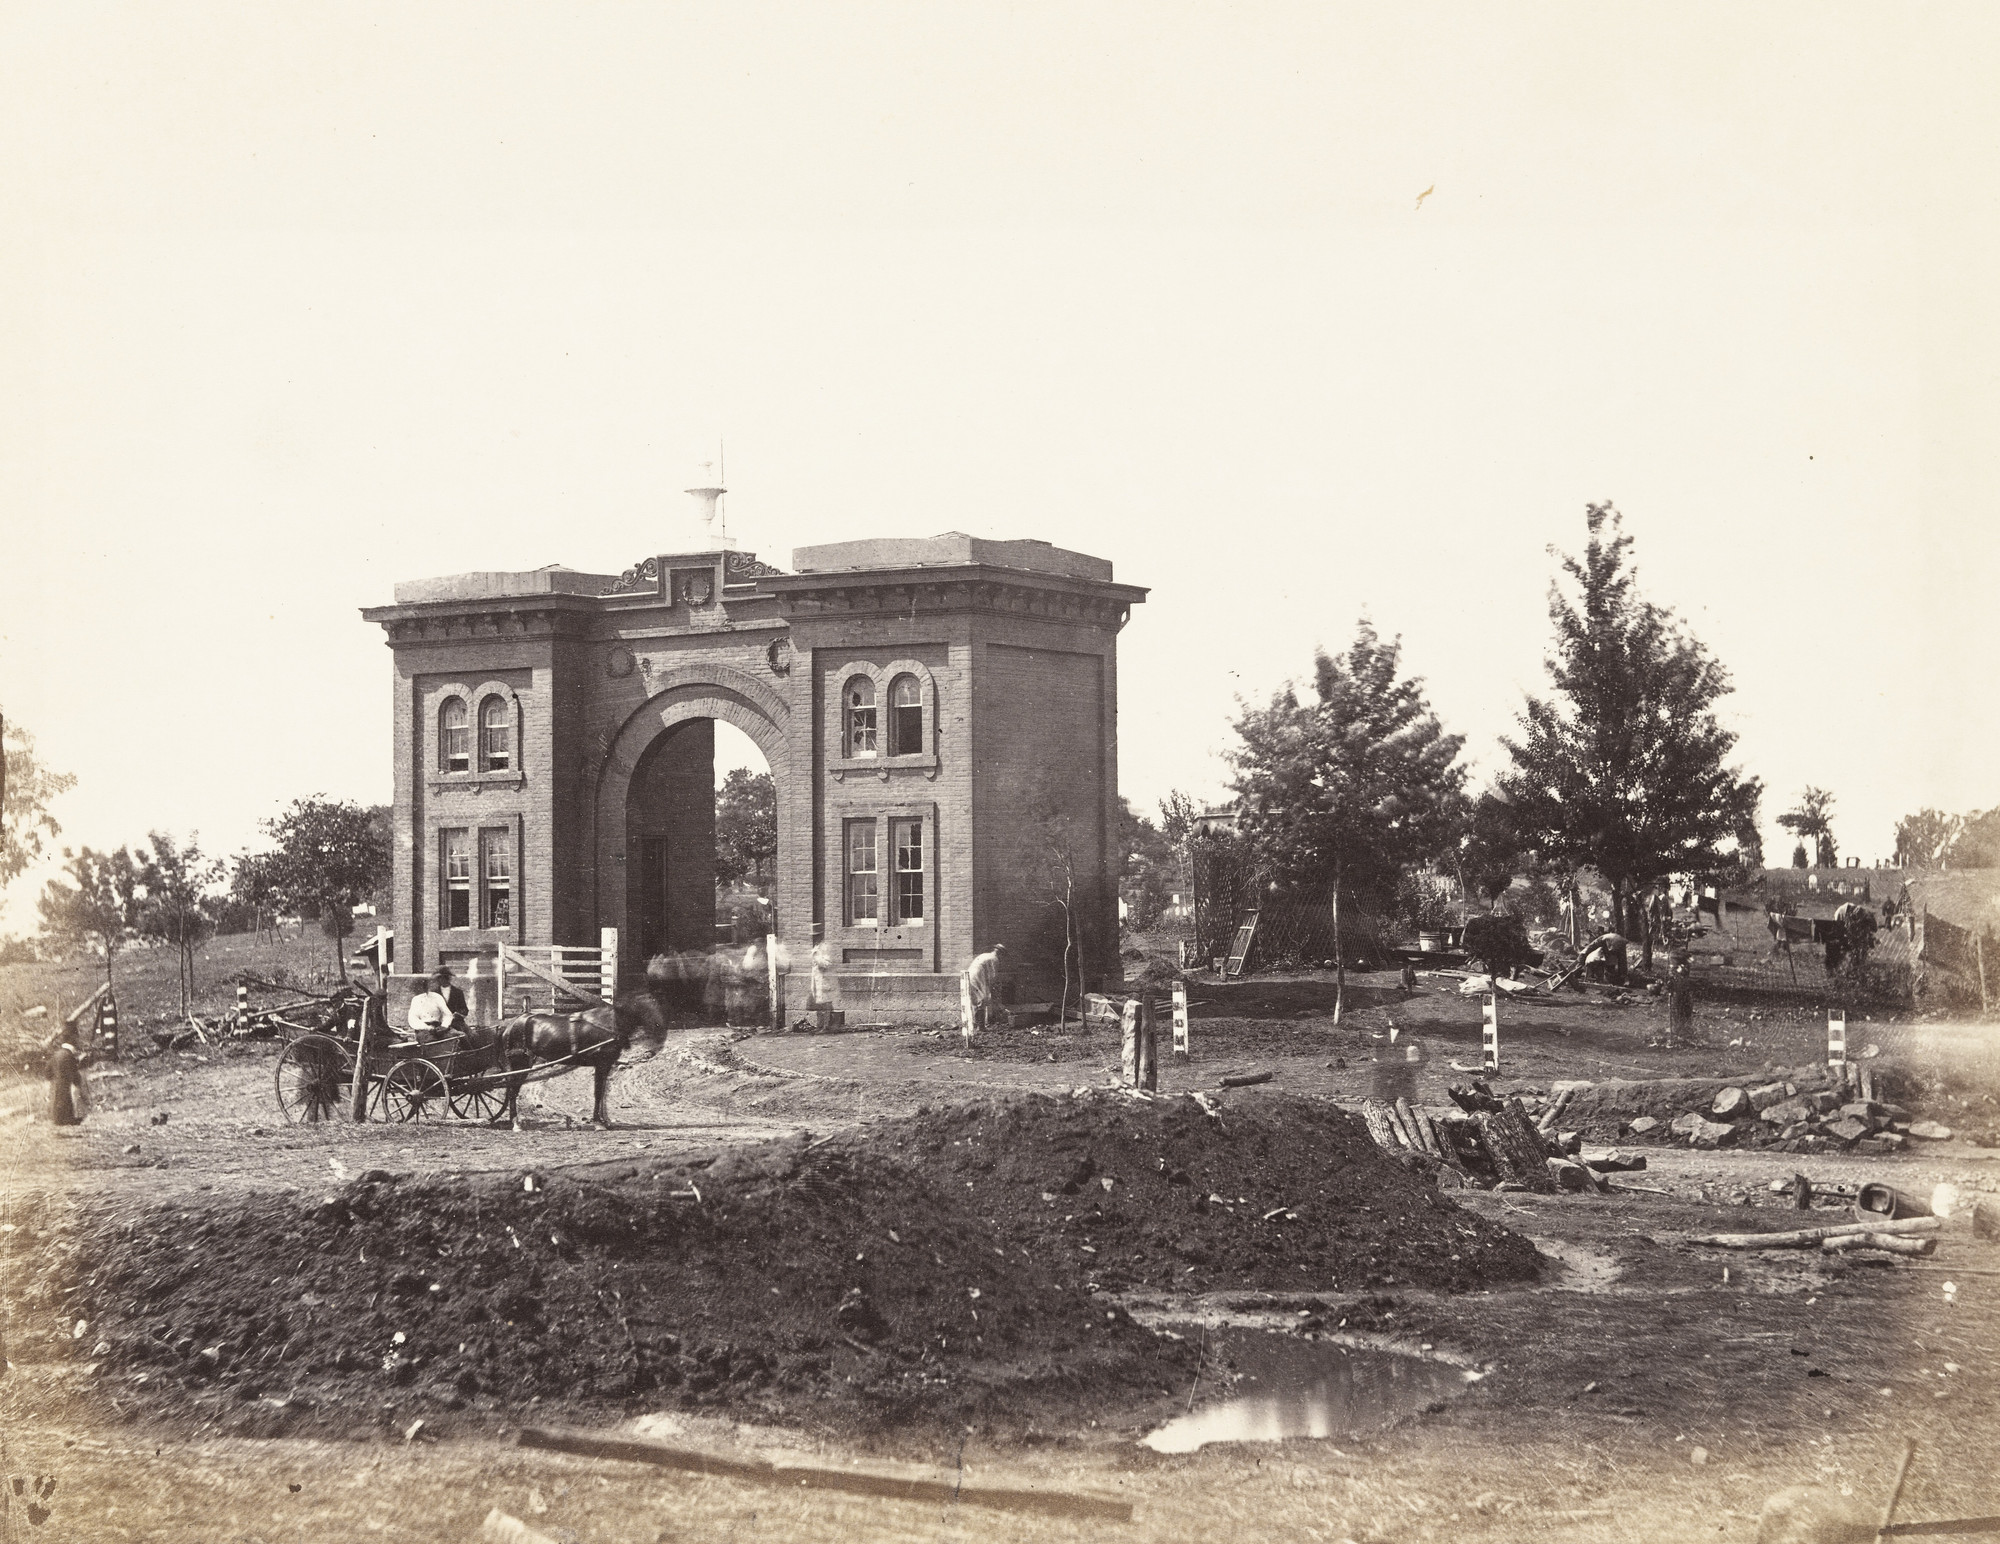 Alexander Gardner, Timothy O'Sullivan. Gateway of Cemetery, Gettysburg. July, 1863